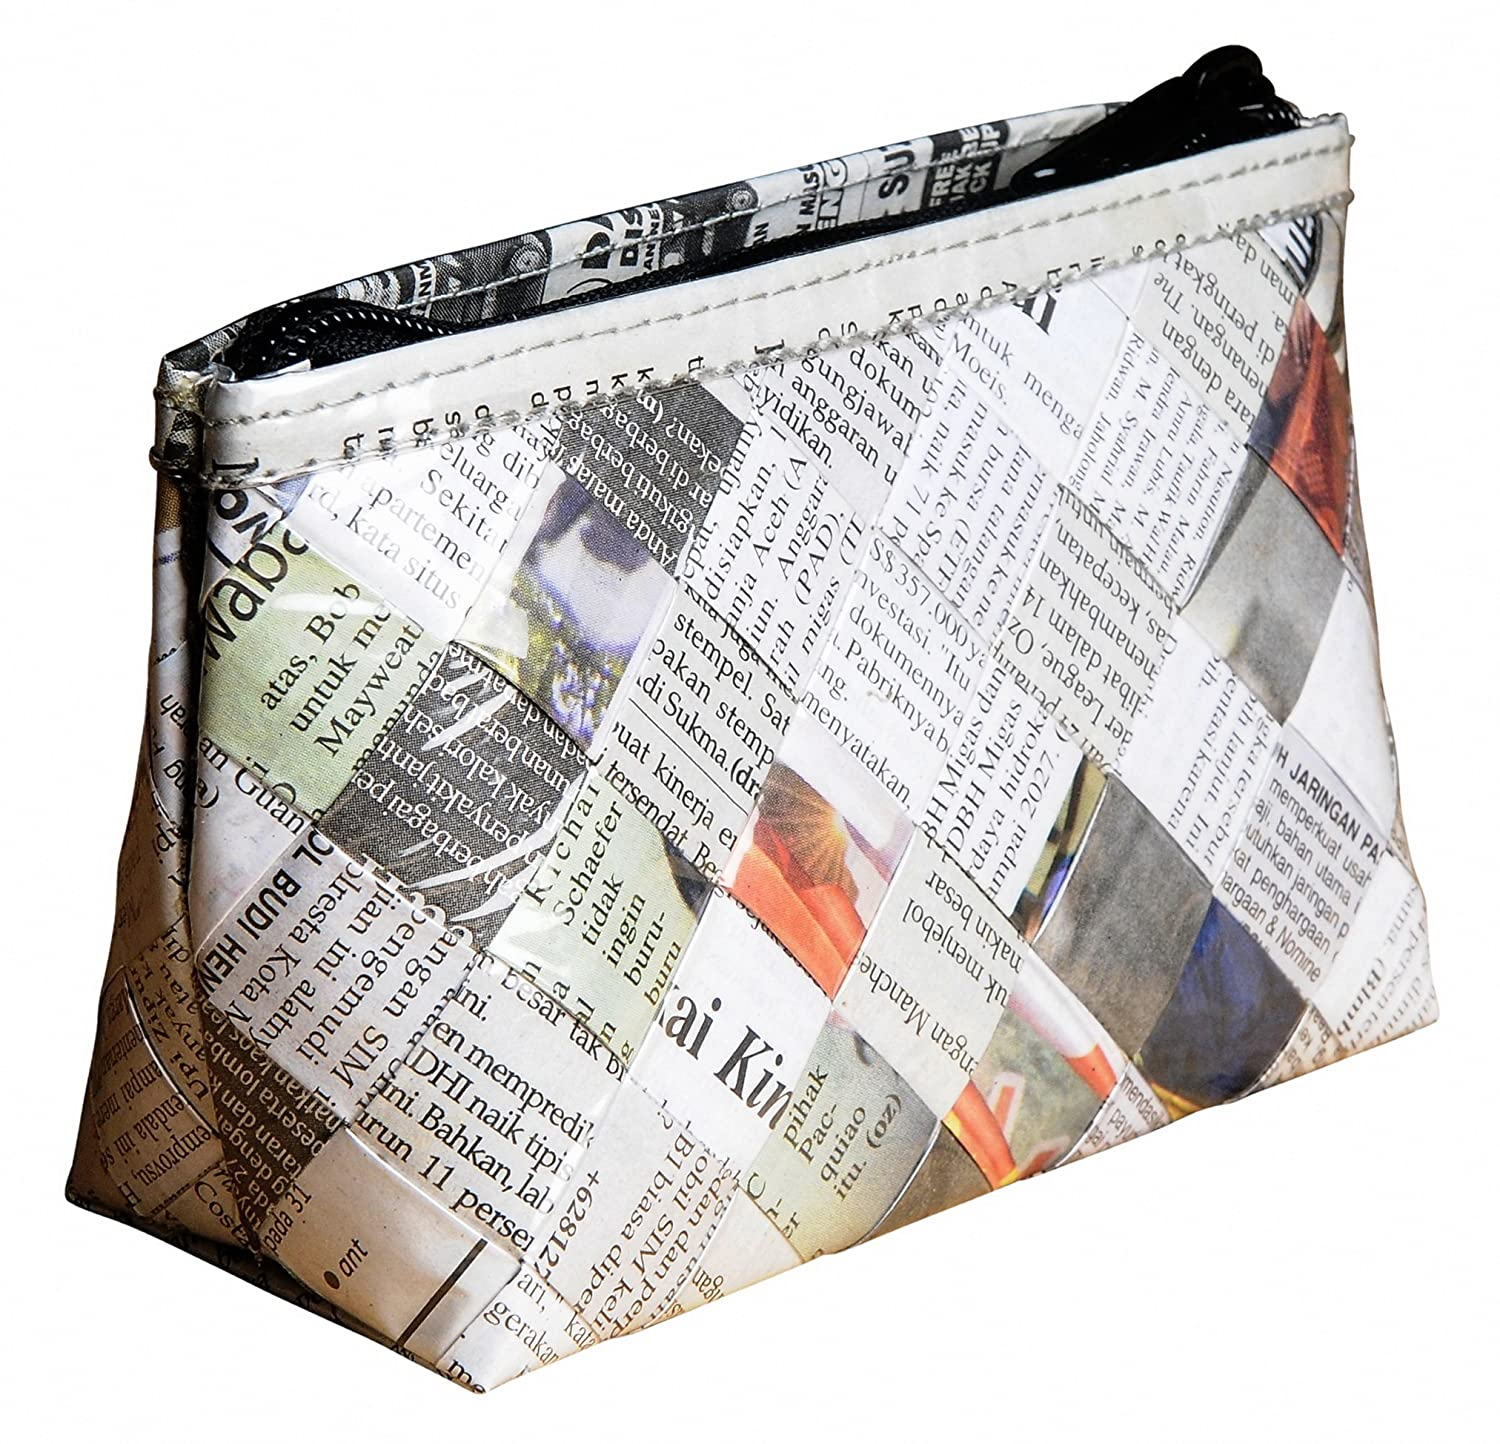 Makeup case made of newspaper - FREE SHIPPING - upcycled style eco friendly design vegan recycled reclaimed salvaged unique handmade gift gifts purse cosmetic cosmetics bag bags pouch organizer